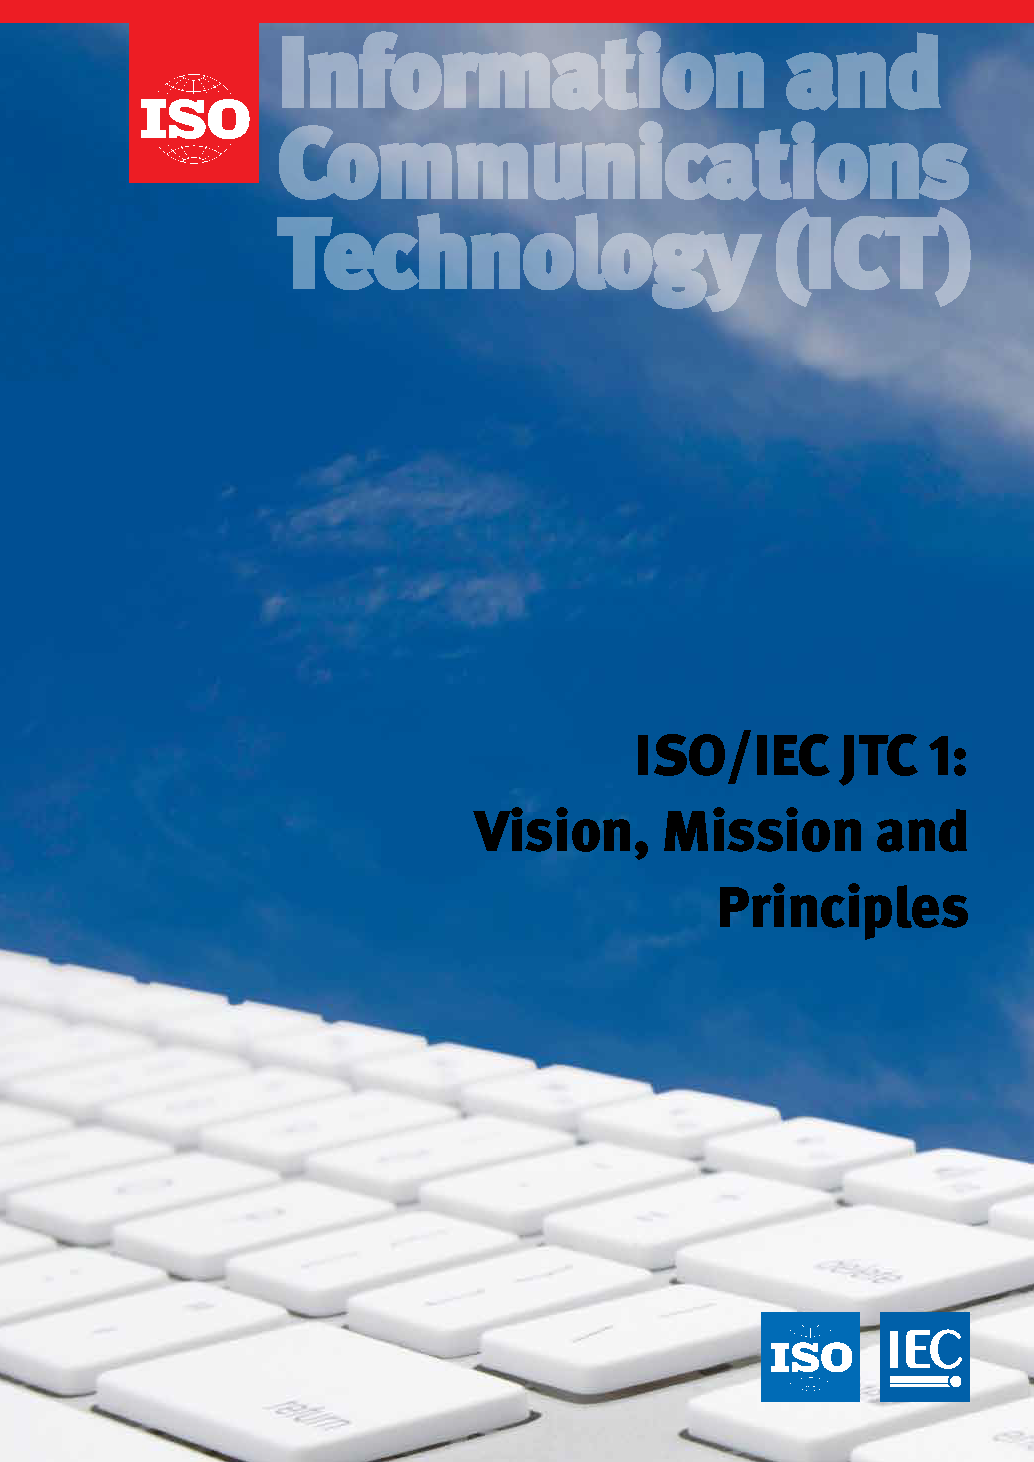 JTC1 Vision, Mission and Principles